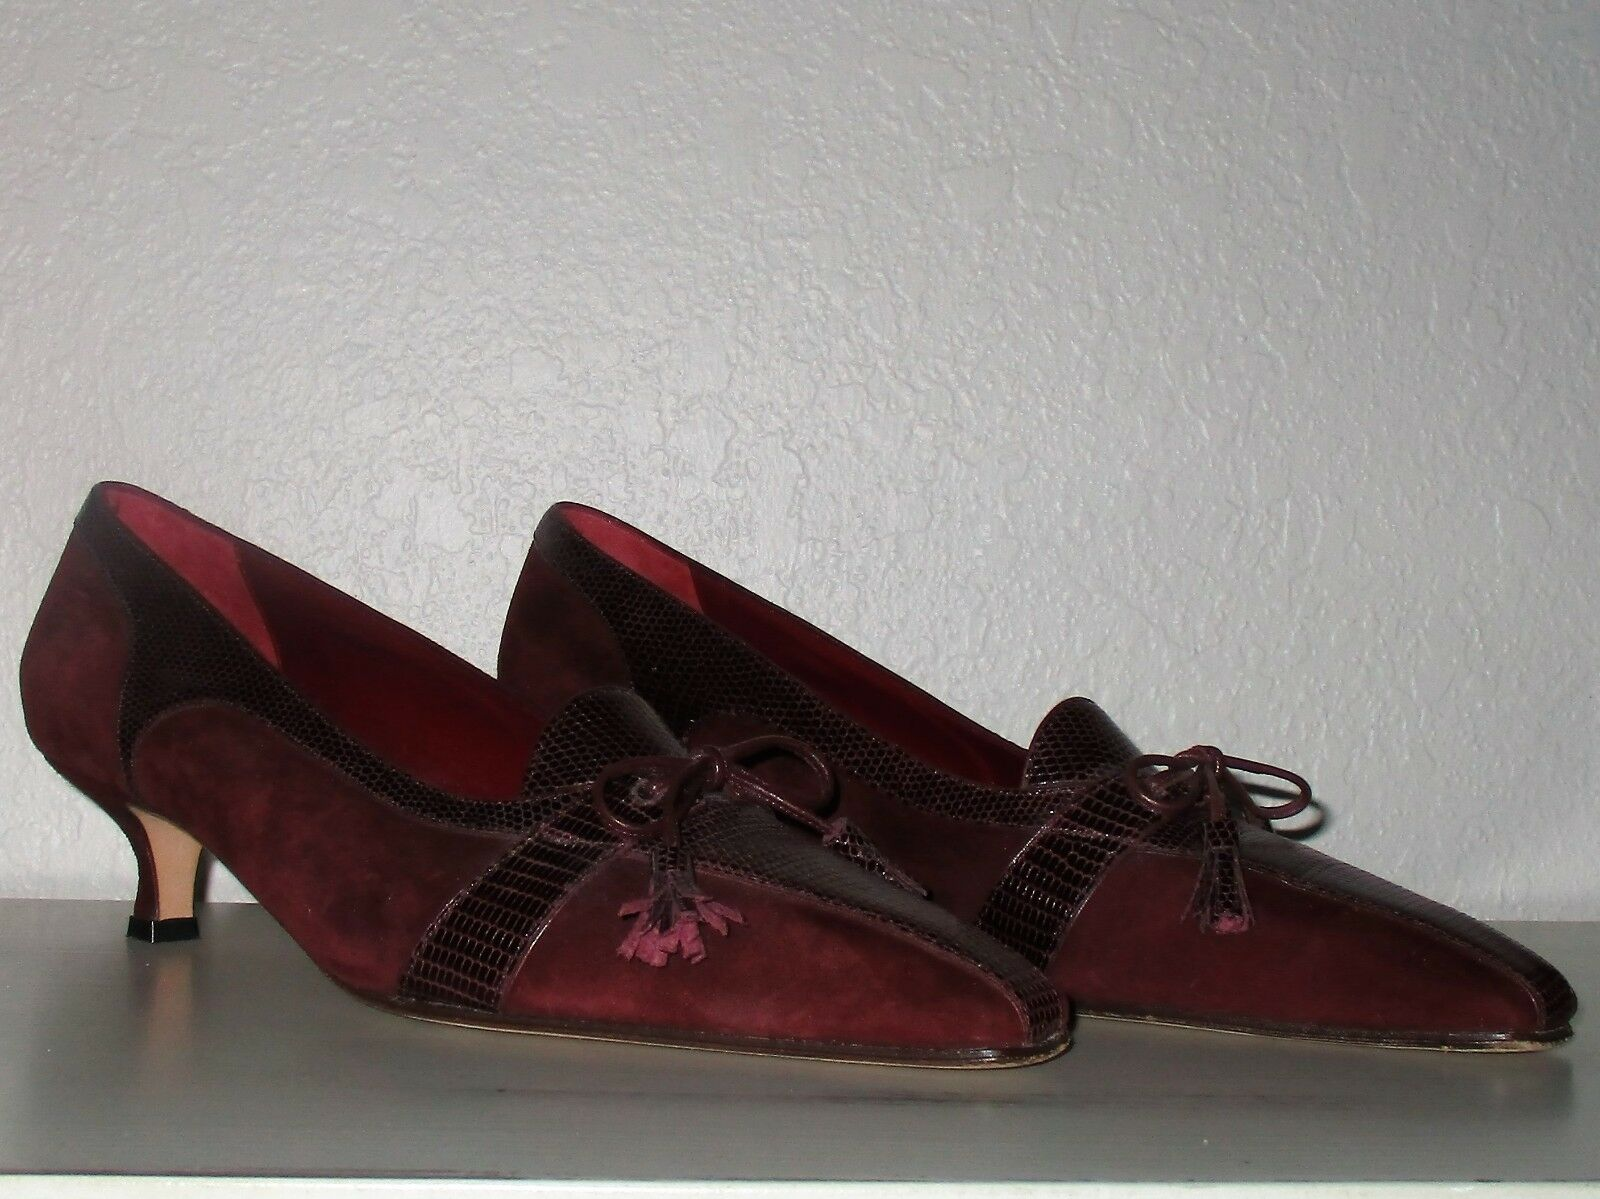 Susan van der Linde Couture Heel-Size 39-France-Beautiful!